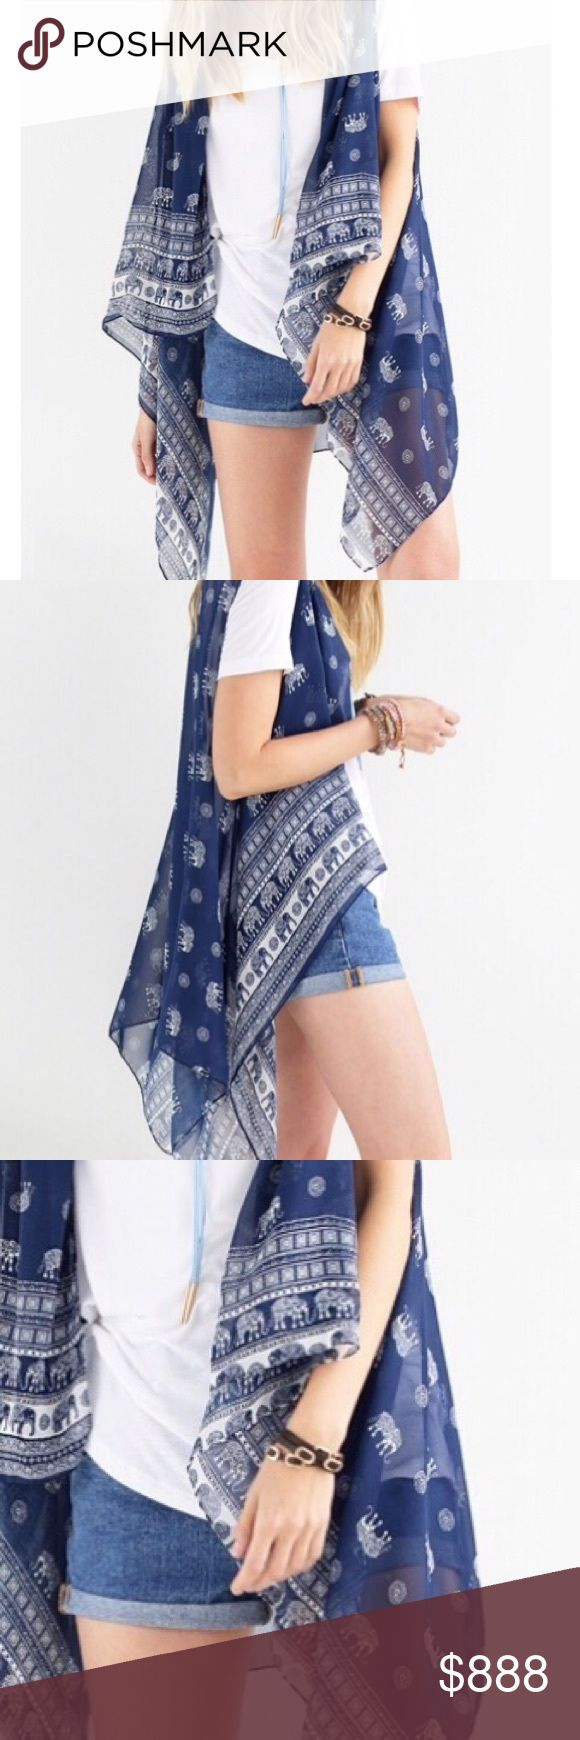 Coming soon❕Elephant kimono vest Elephants!!!!!! Gorgeous on trend elephant and tribal print kimono vest. Uneven hem giving it a fun boho look and feel. Sheer and lightweight. Navy blue.  Wear with cut off shorts and sandals 🐘🌴will be priced at $37 boutique Tops